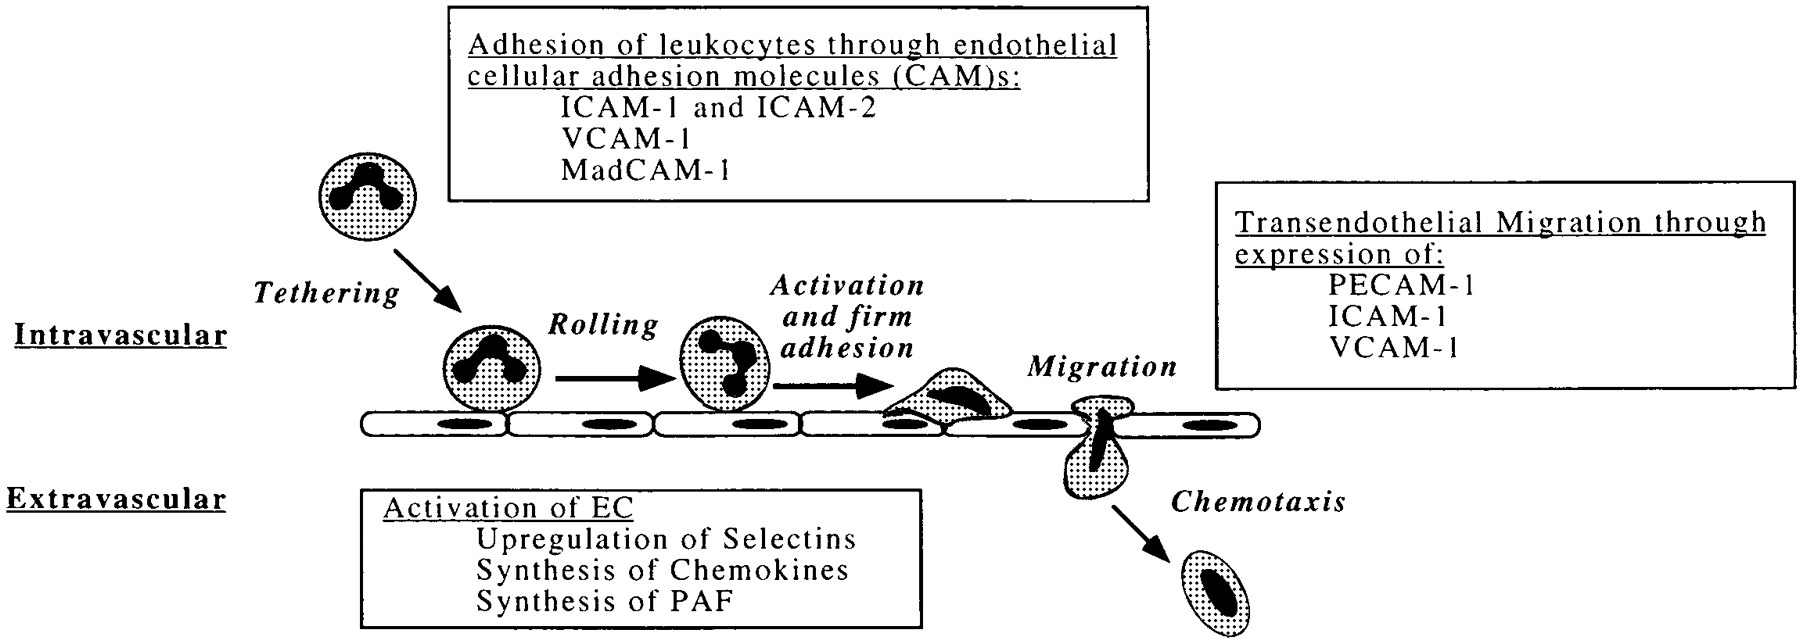 Coursepath417 Case 4 Group 1 Final Ubc Wiki Where Can I Find A Diagram Of White Blood Cell Tutorvista Answers Interaction Leukocytes With The Endothelium